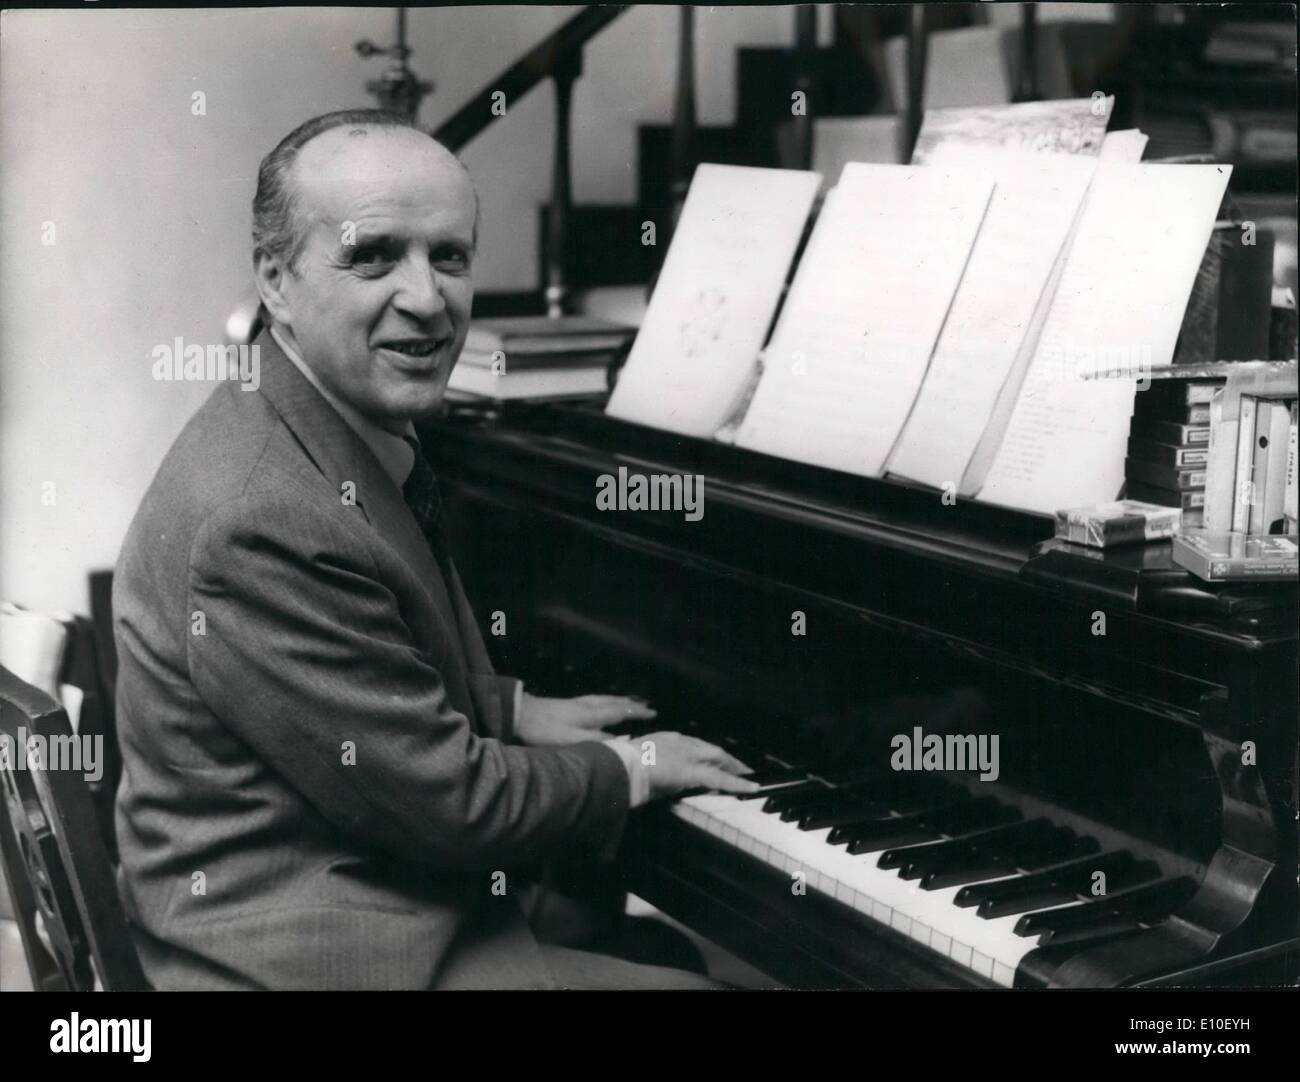 Composer Nino Rota Author Of The Theme From The Film The Godfather Seen At His Home Manifestly Satisfied Of The Success That The Music Of The